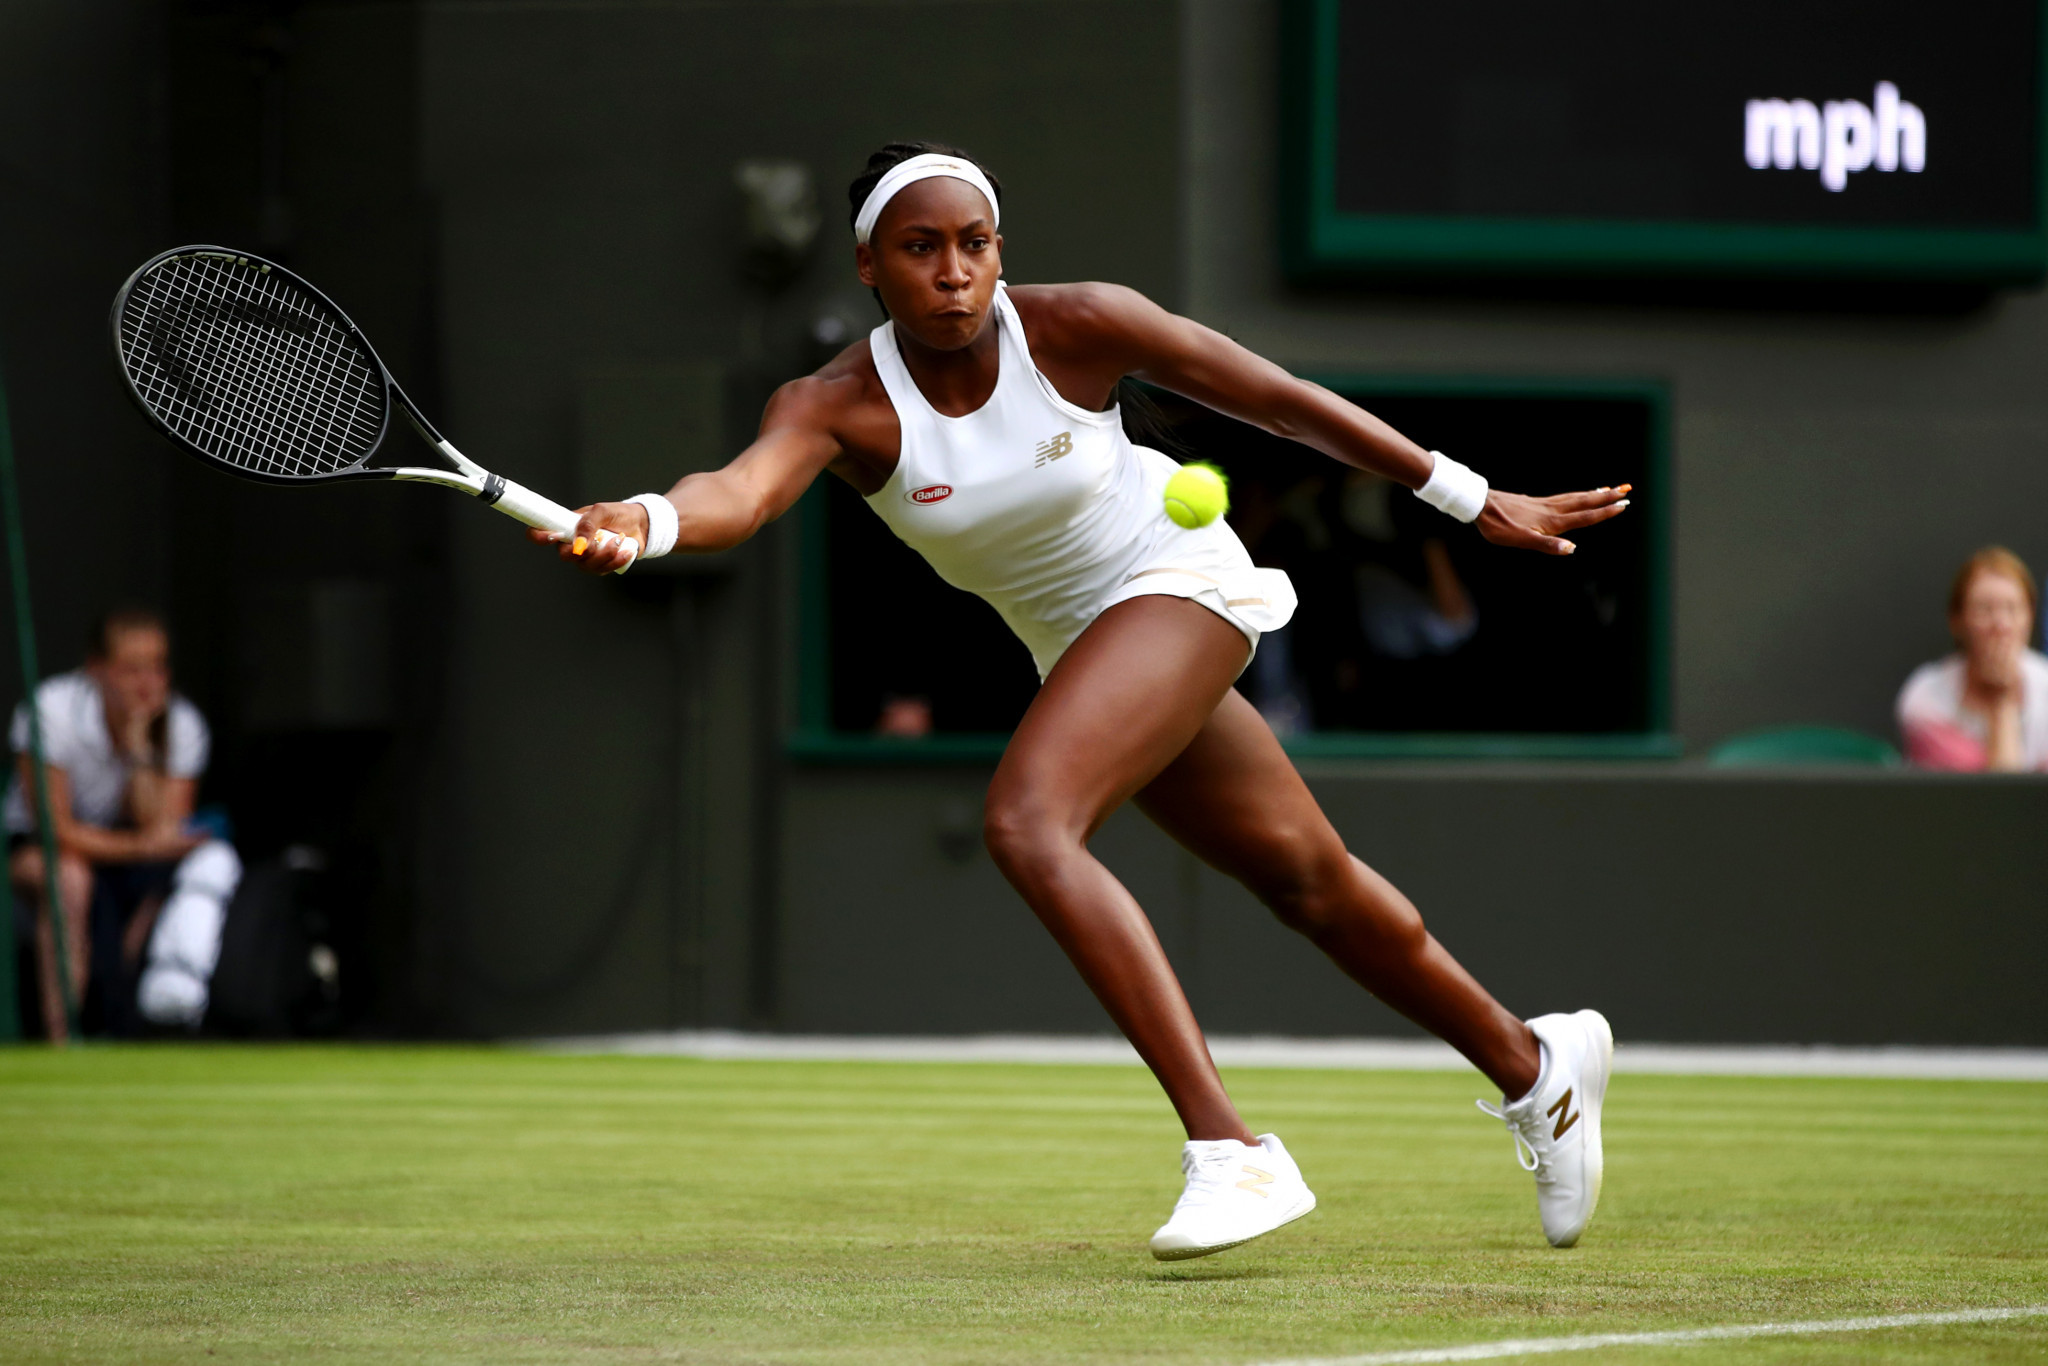 Cori Gauff, at 15 already the youngest qualifier at a Grand Slam tournament in the 41-year history of the Open era, caused an even bigger shock by beating fellow American Venus Williams ©Getty Images